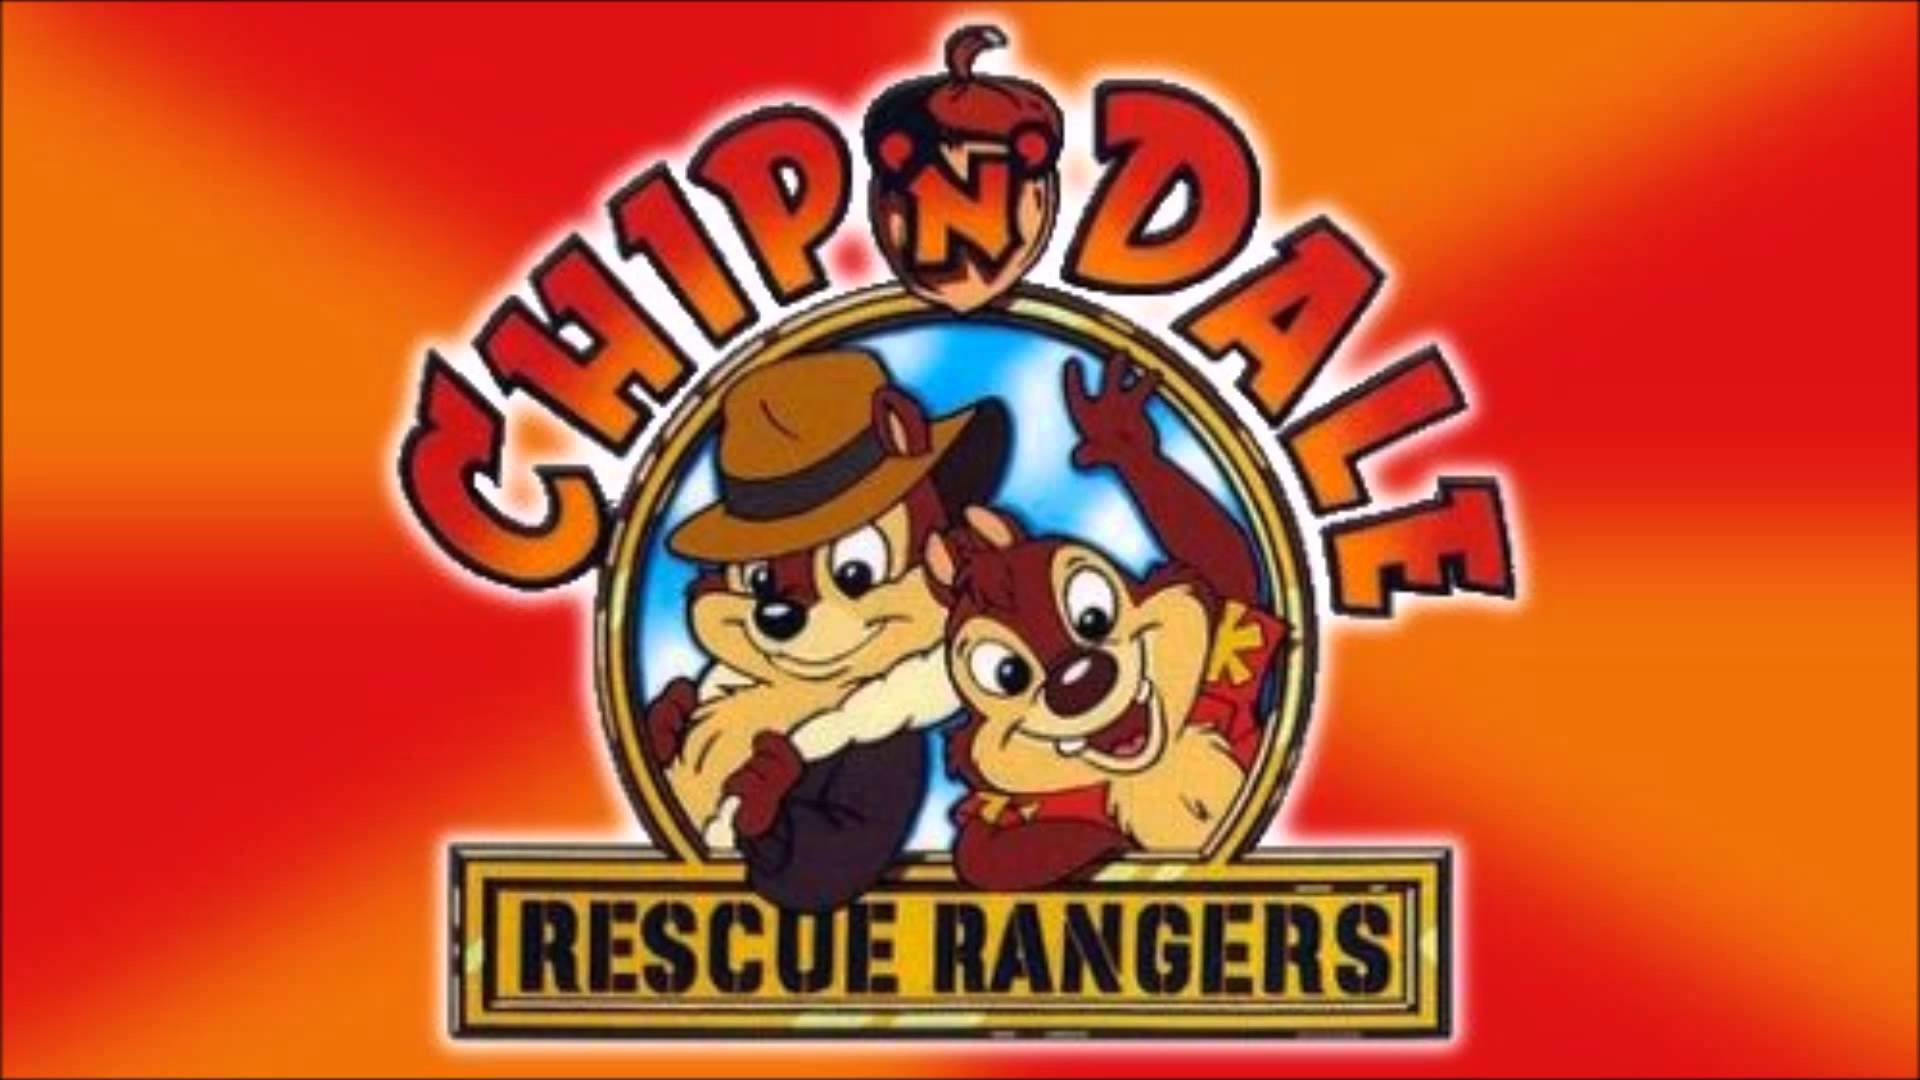 Chip n Dale Rescue Rangers #8A FN 2011 Stock Image